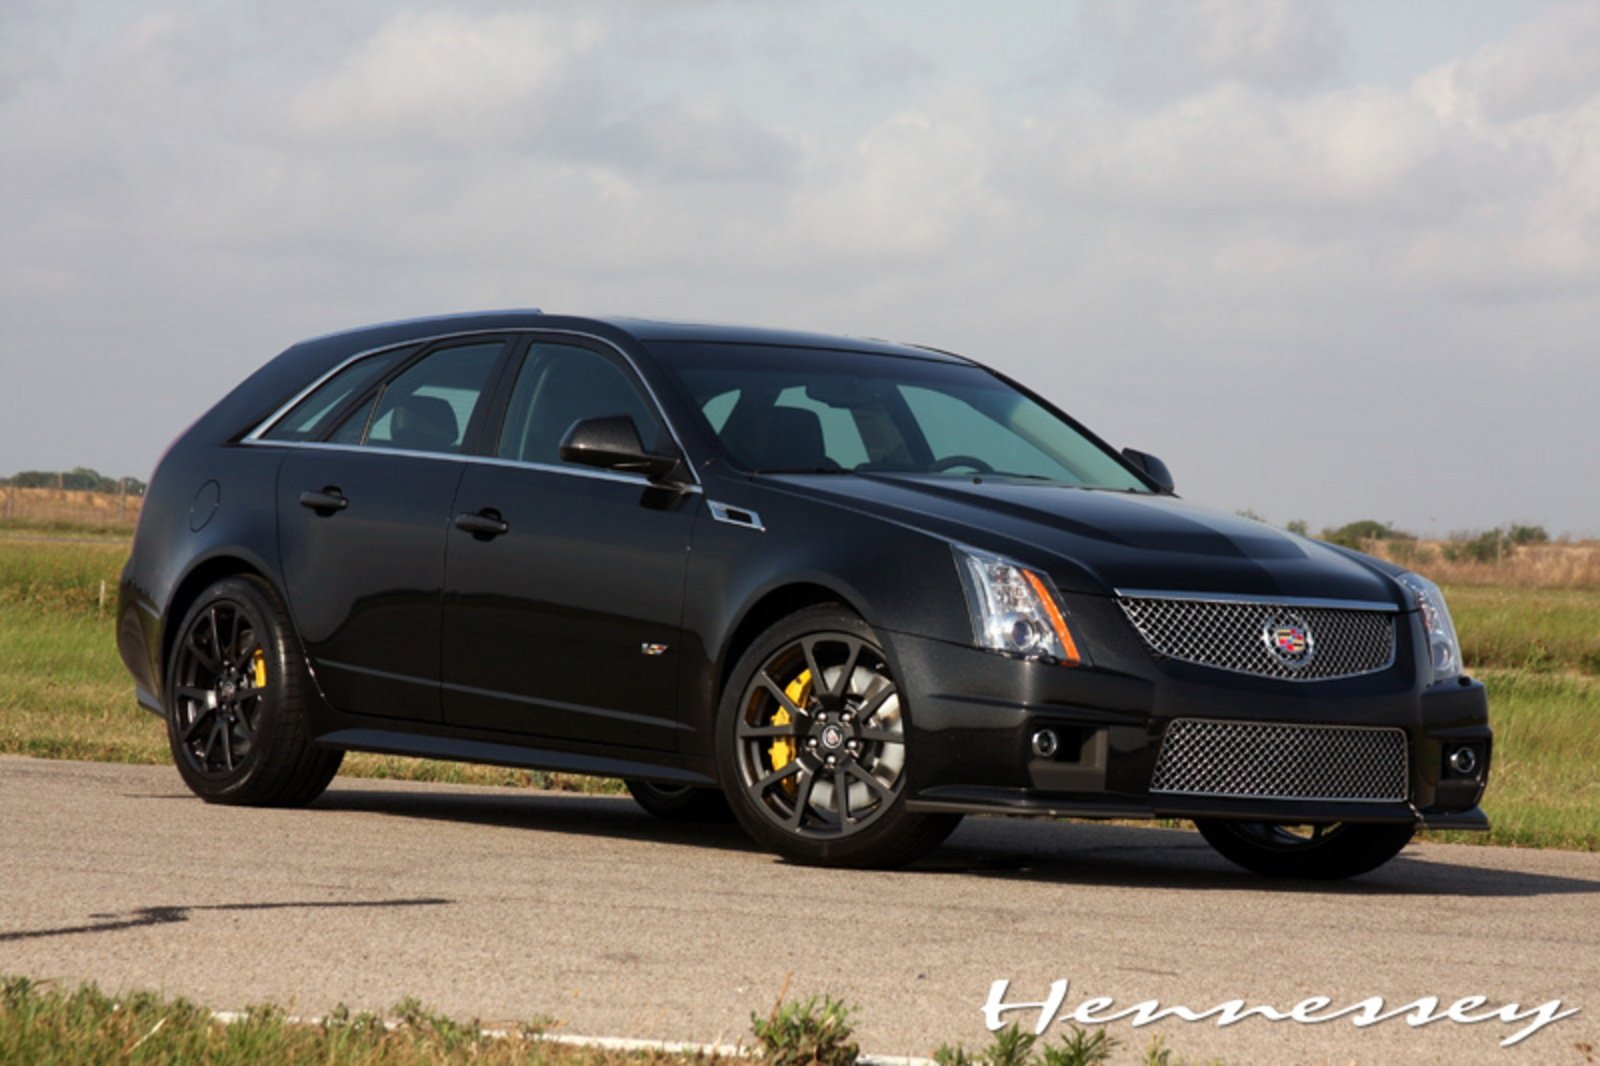 2011 Cadilac Cts V Black Diamond Edition V700 Sport Wagon